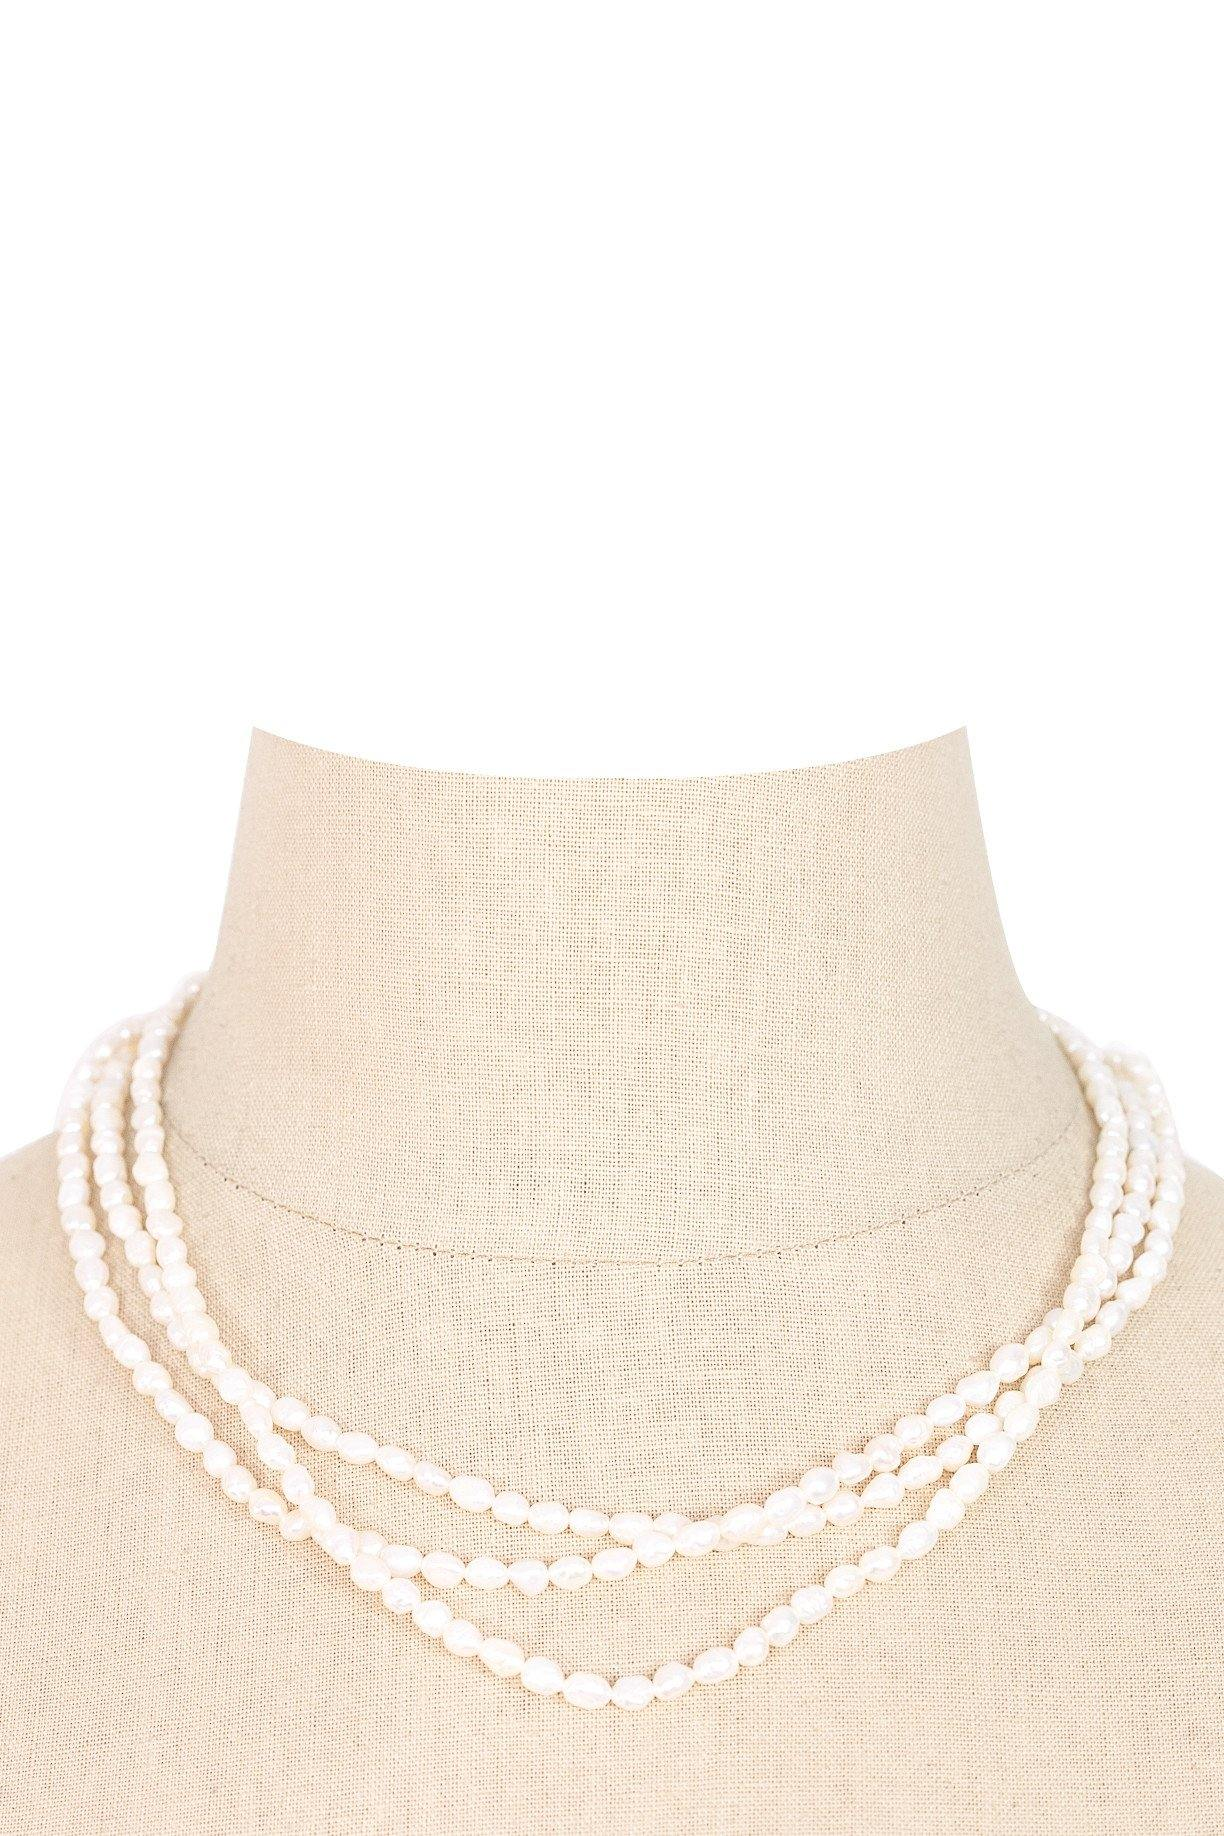 60's__Vintage__Pearl Layering Necklace